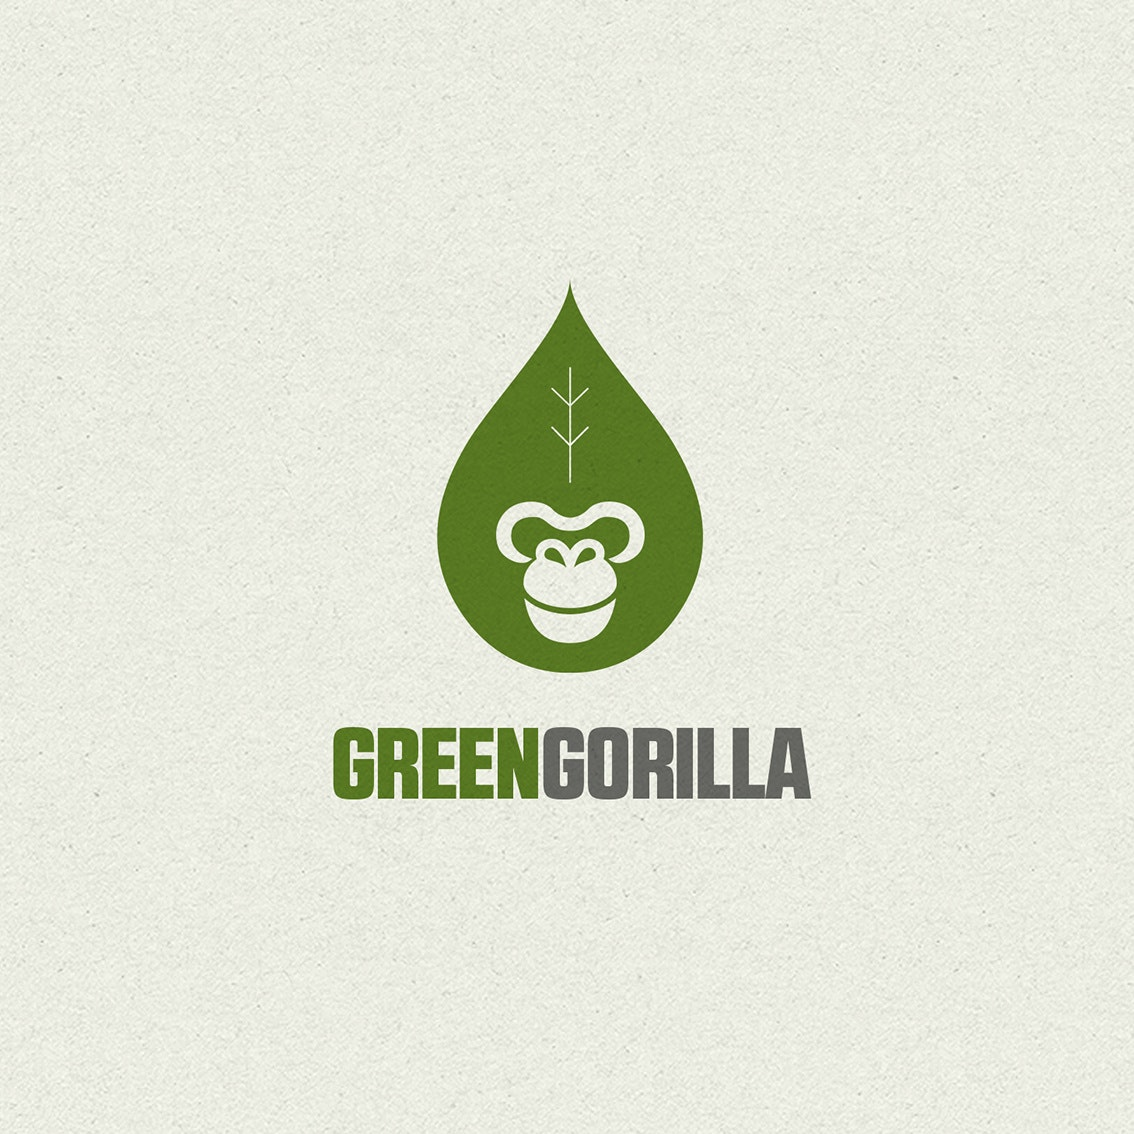 Green gorilla logo design